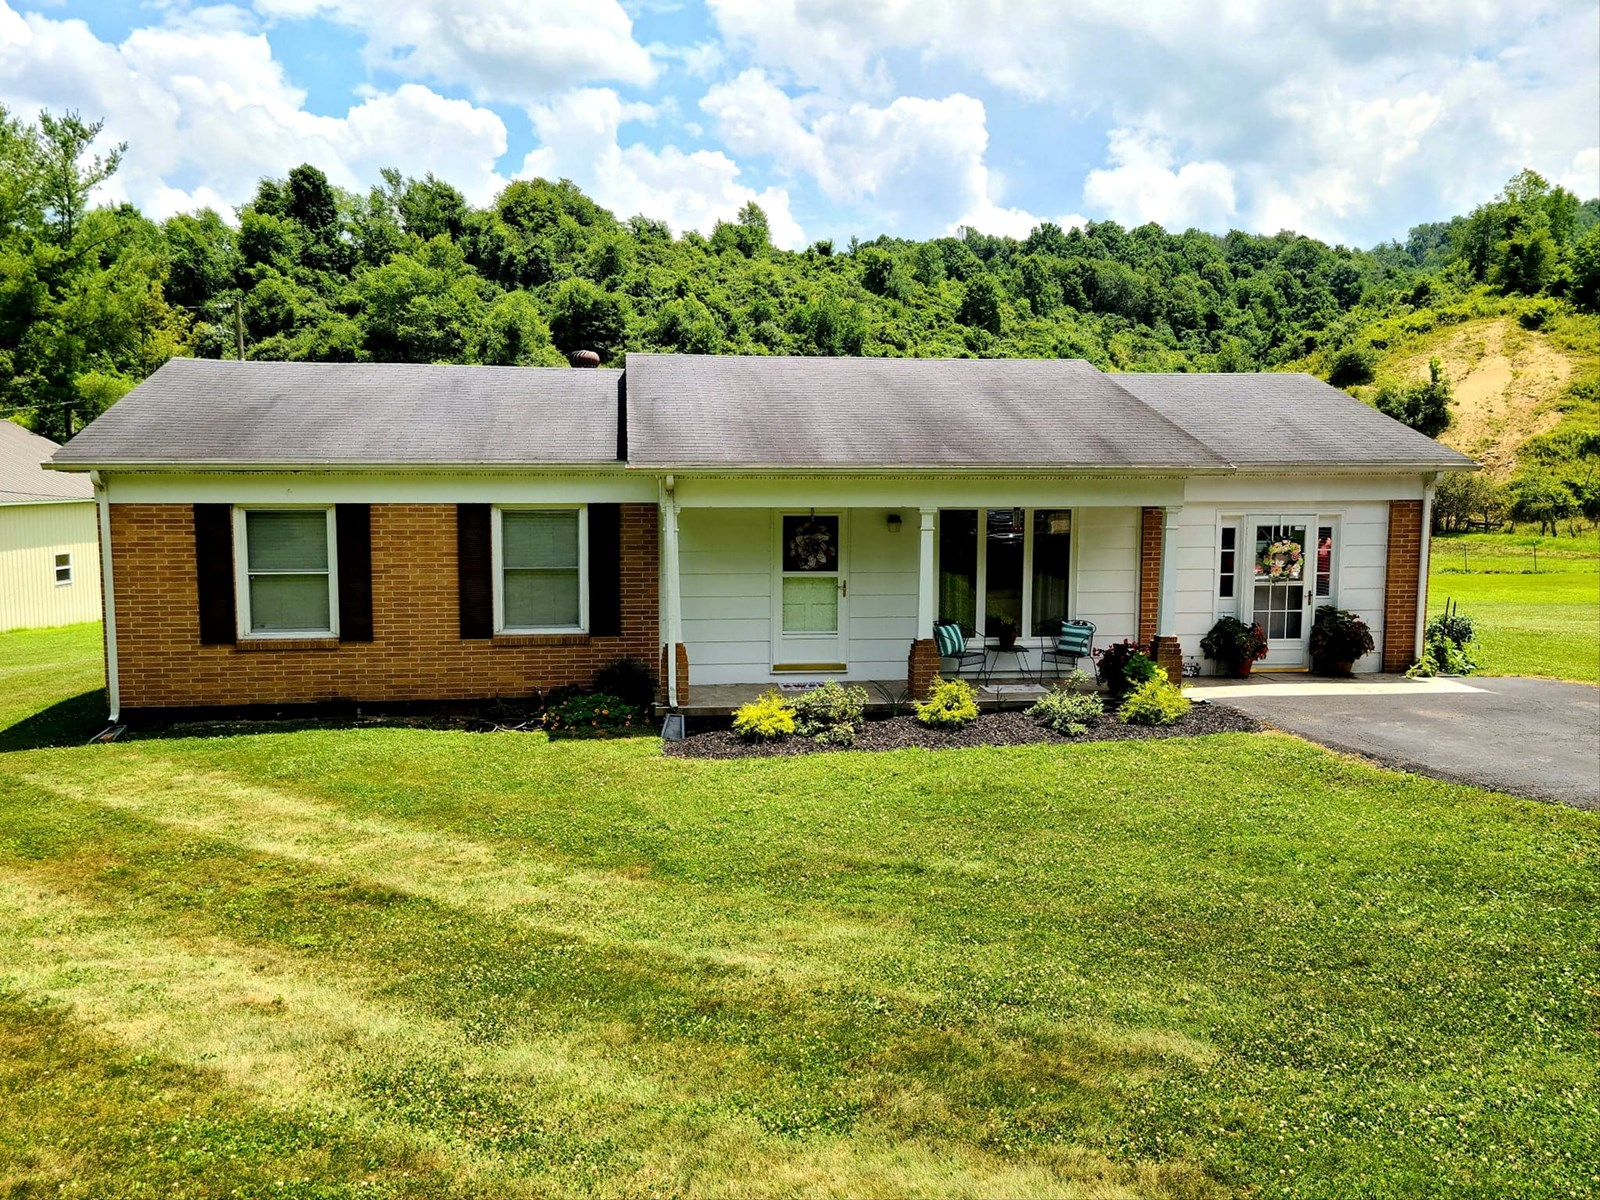 3 BR 1.5 BA Updated Home Witten Valley Area of Tazewell